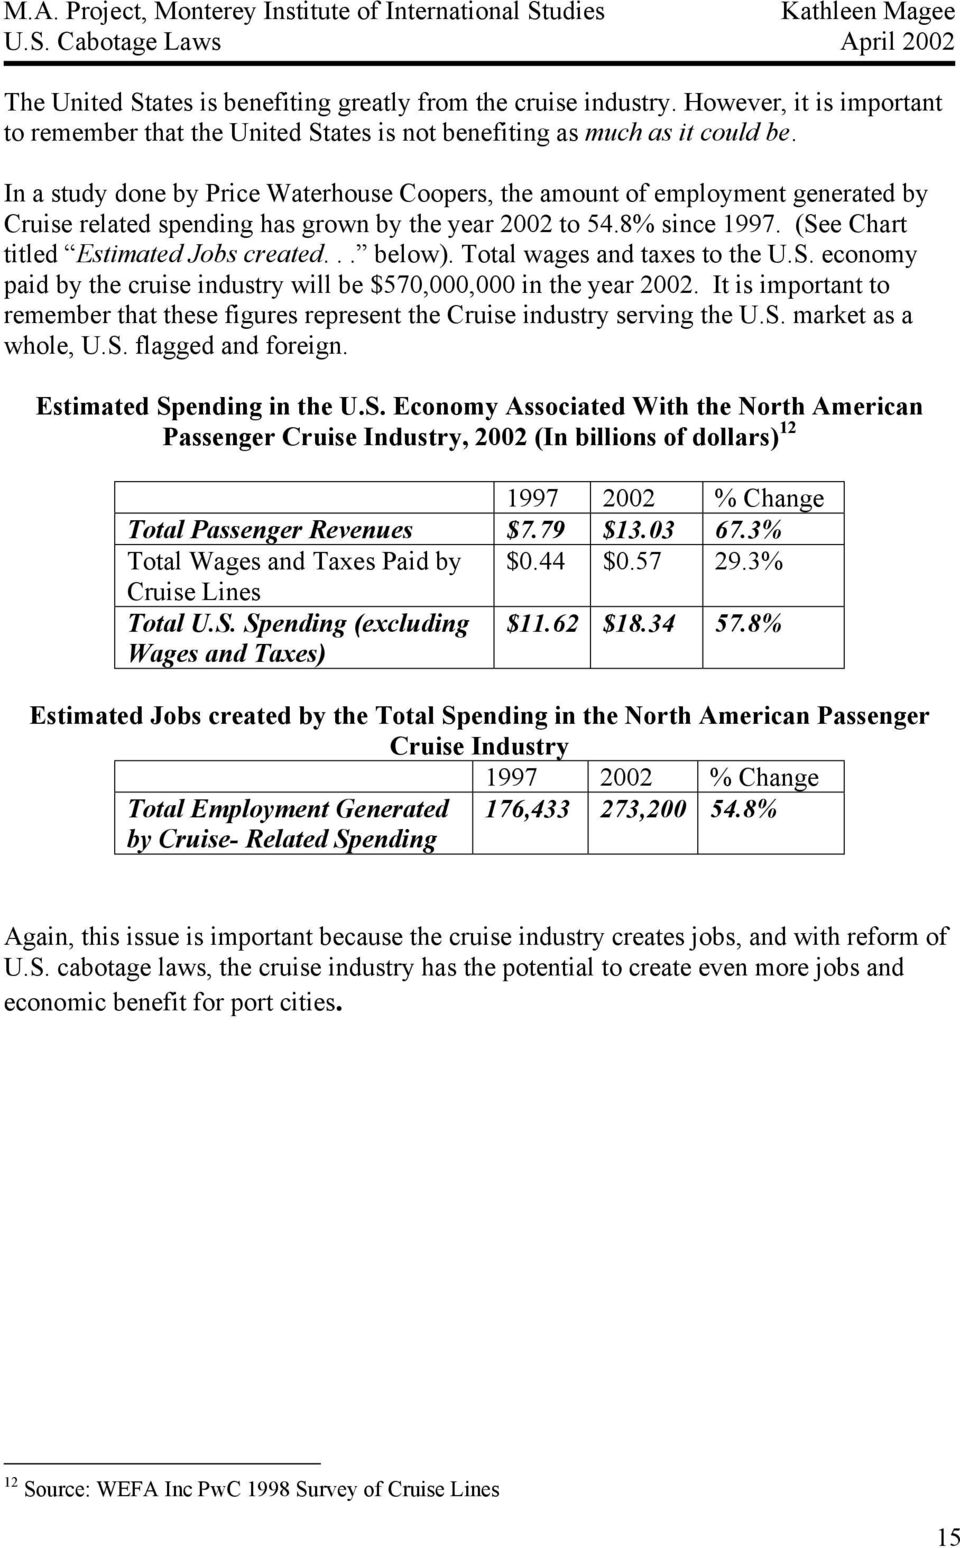 .. below). Total wages and taxes to the U.S. economy paid by the cruise industry will be $570,000,000 in the year 2002.